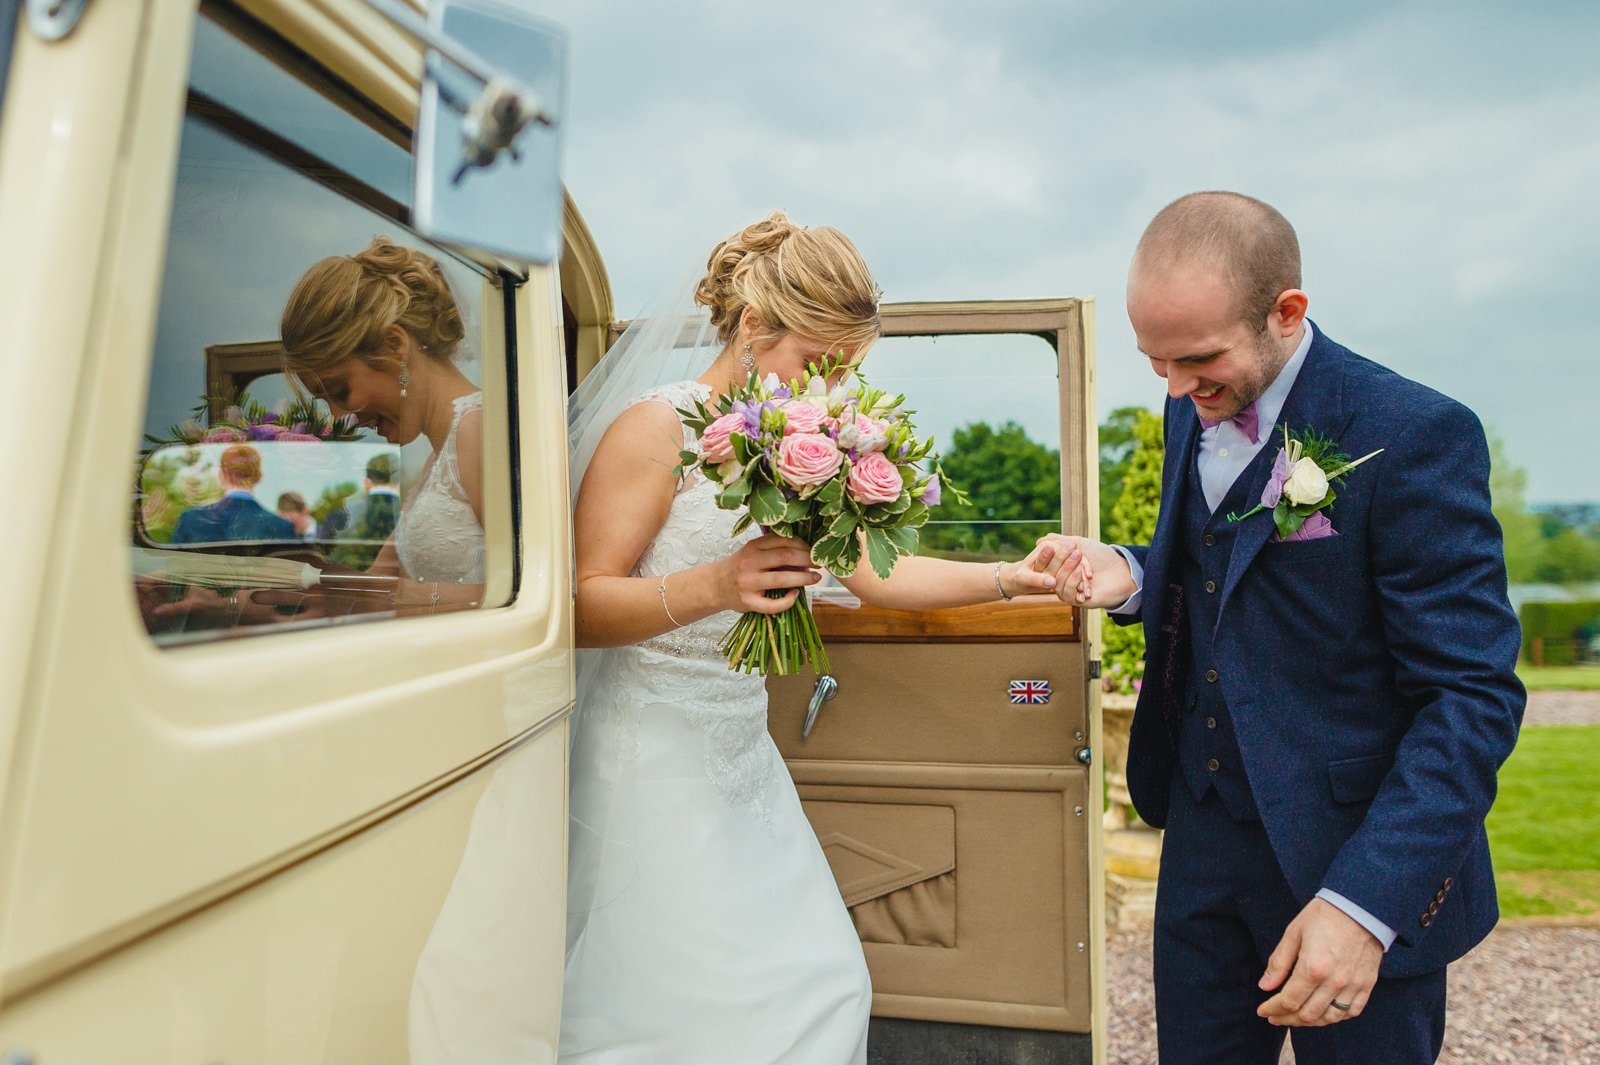 Millers Of Netley wedding, Dorrington, Shrewsbury | Emma + Ben 40